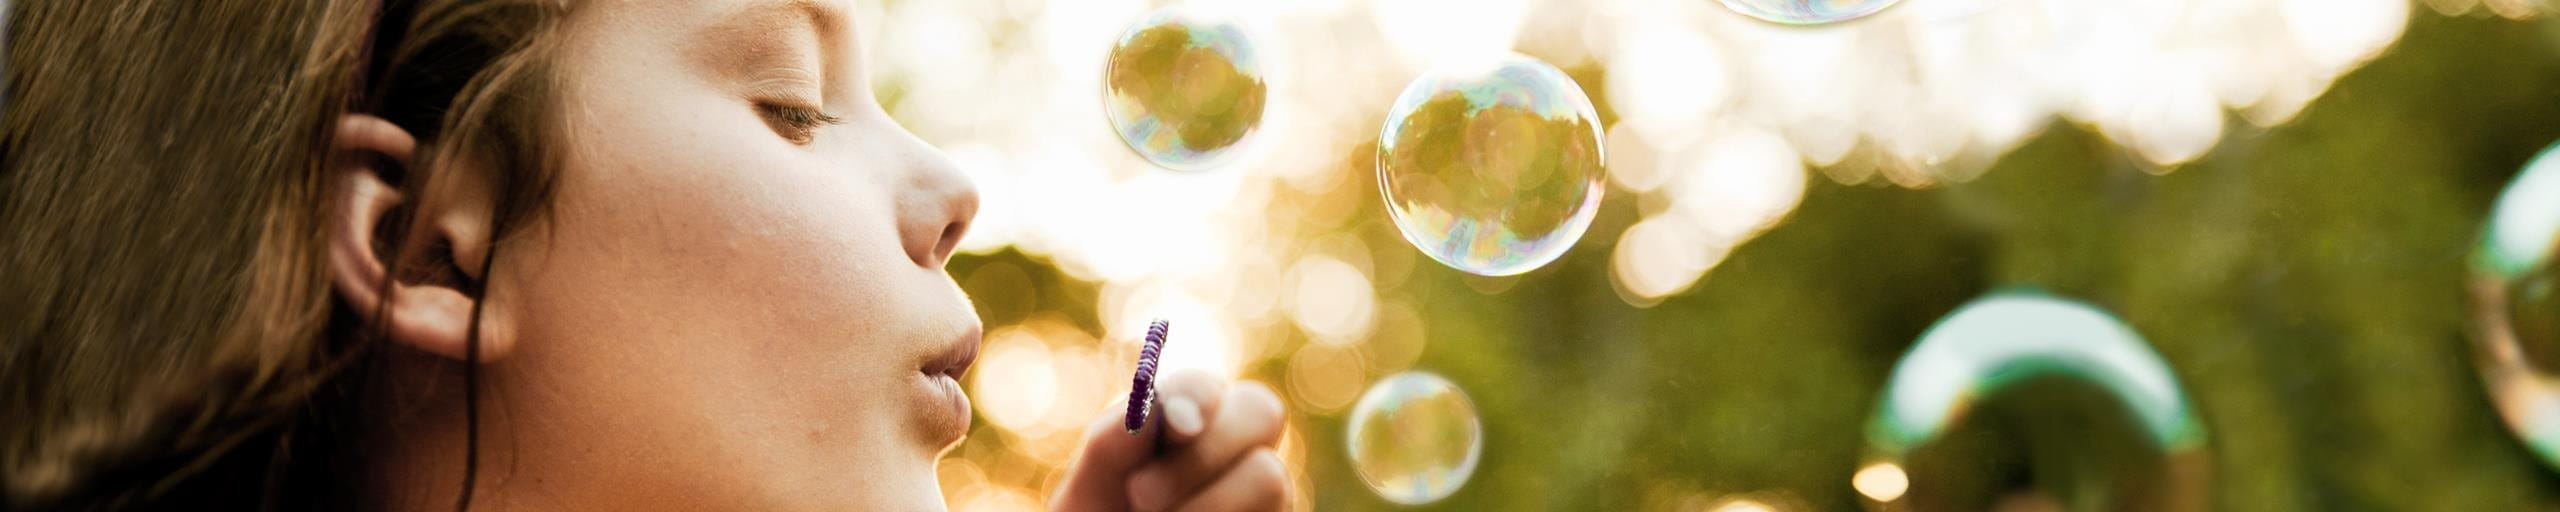 A girl blowing soap bubbles.